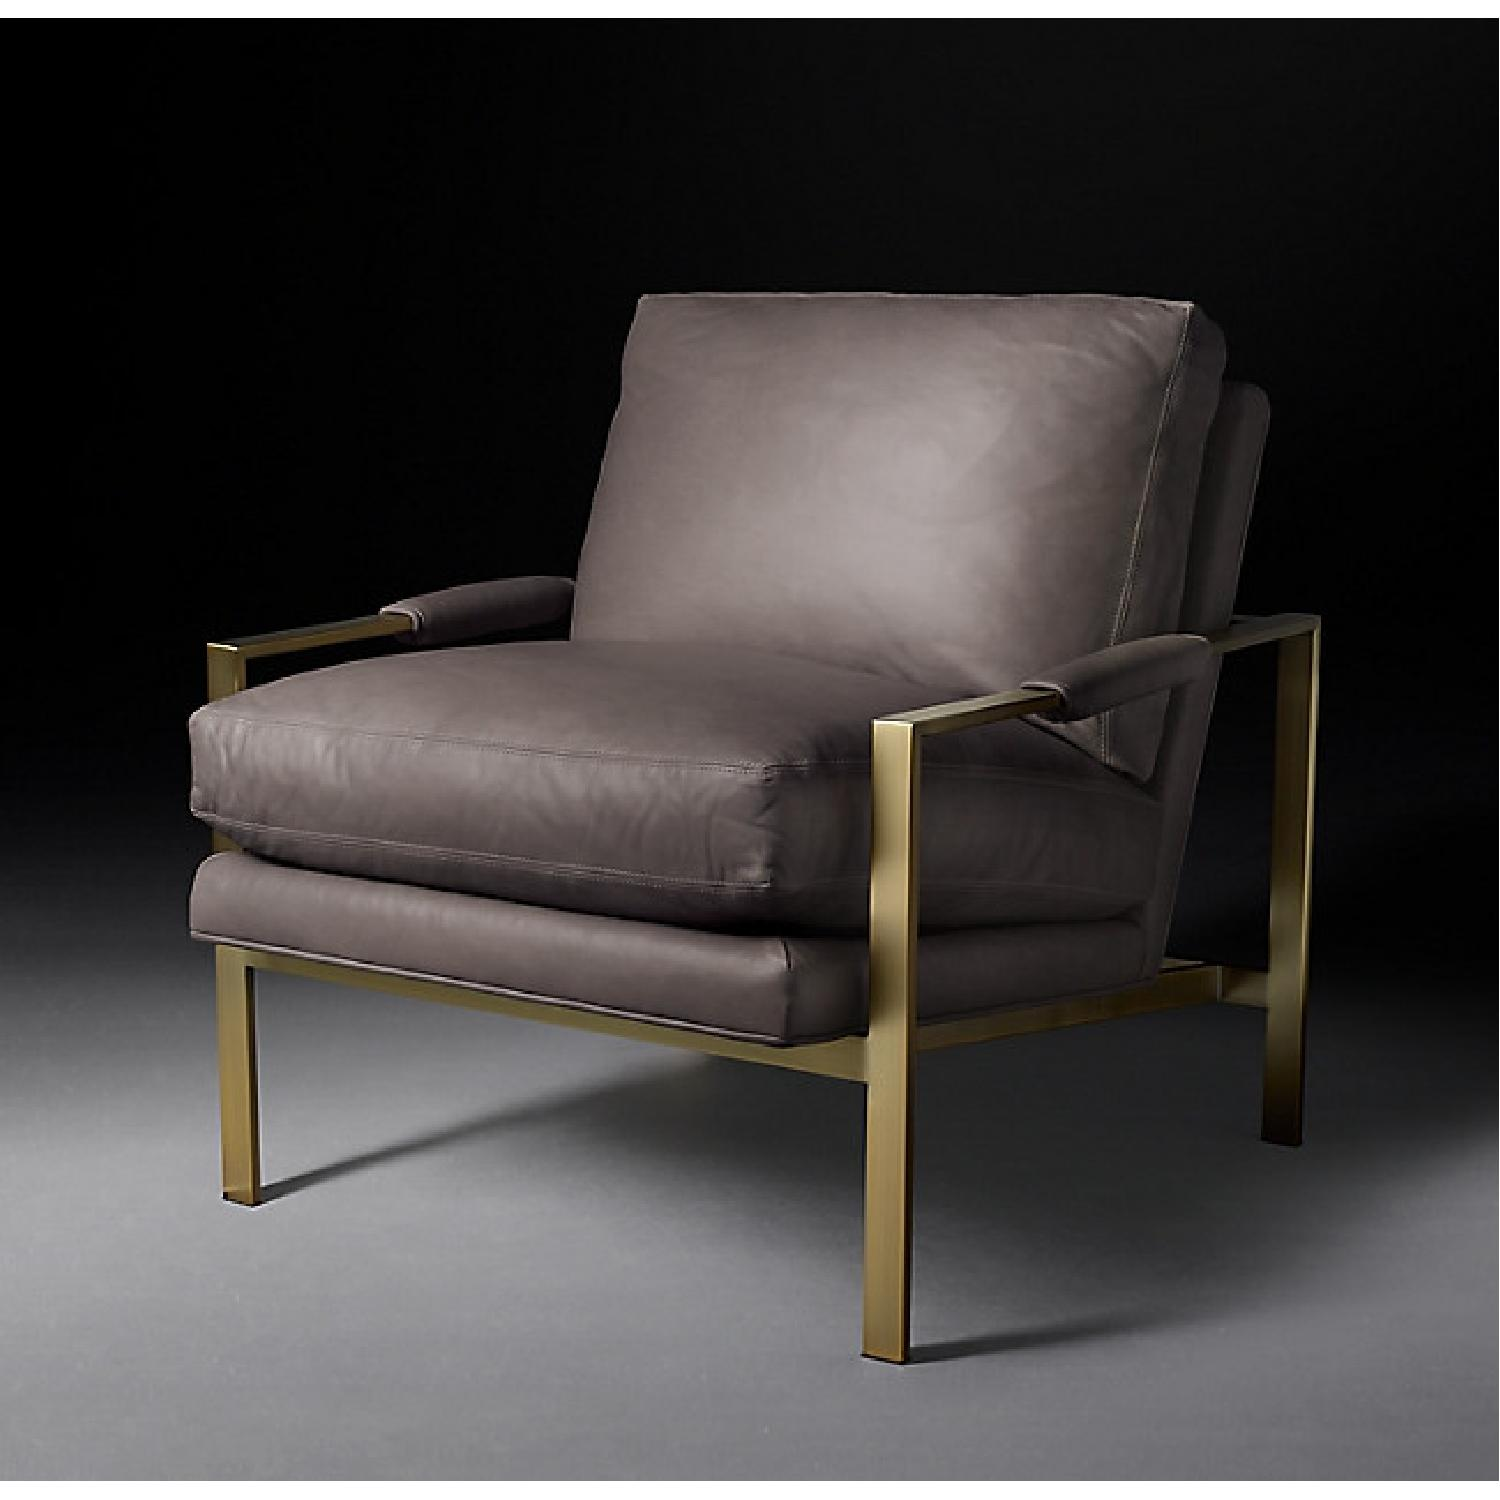 Restoration Hardware Satin Brass Armchair (Set of 2) - image-8